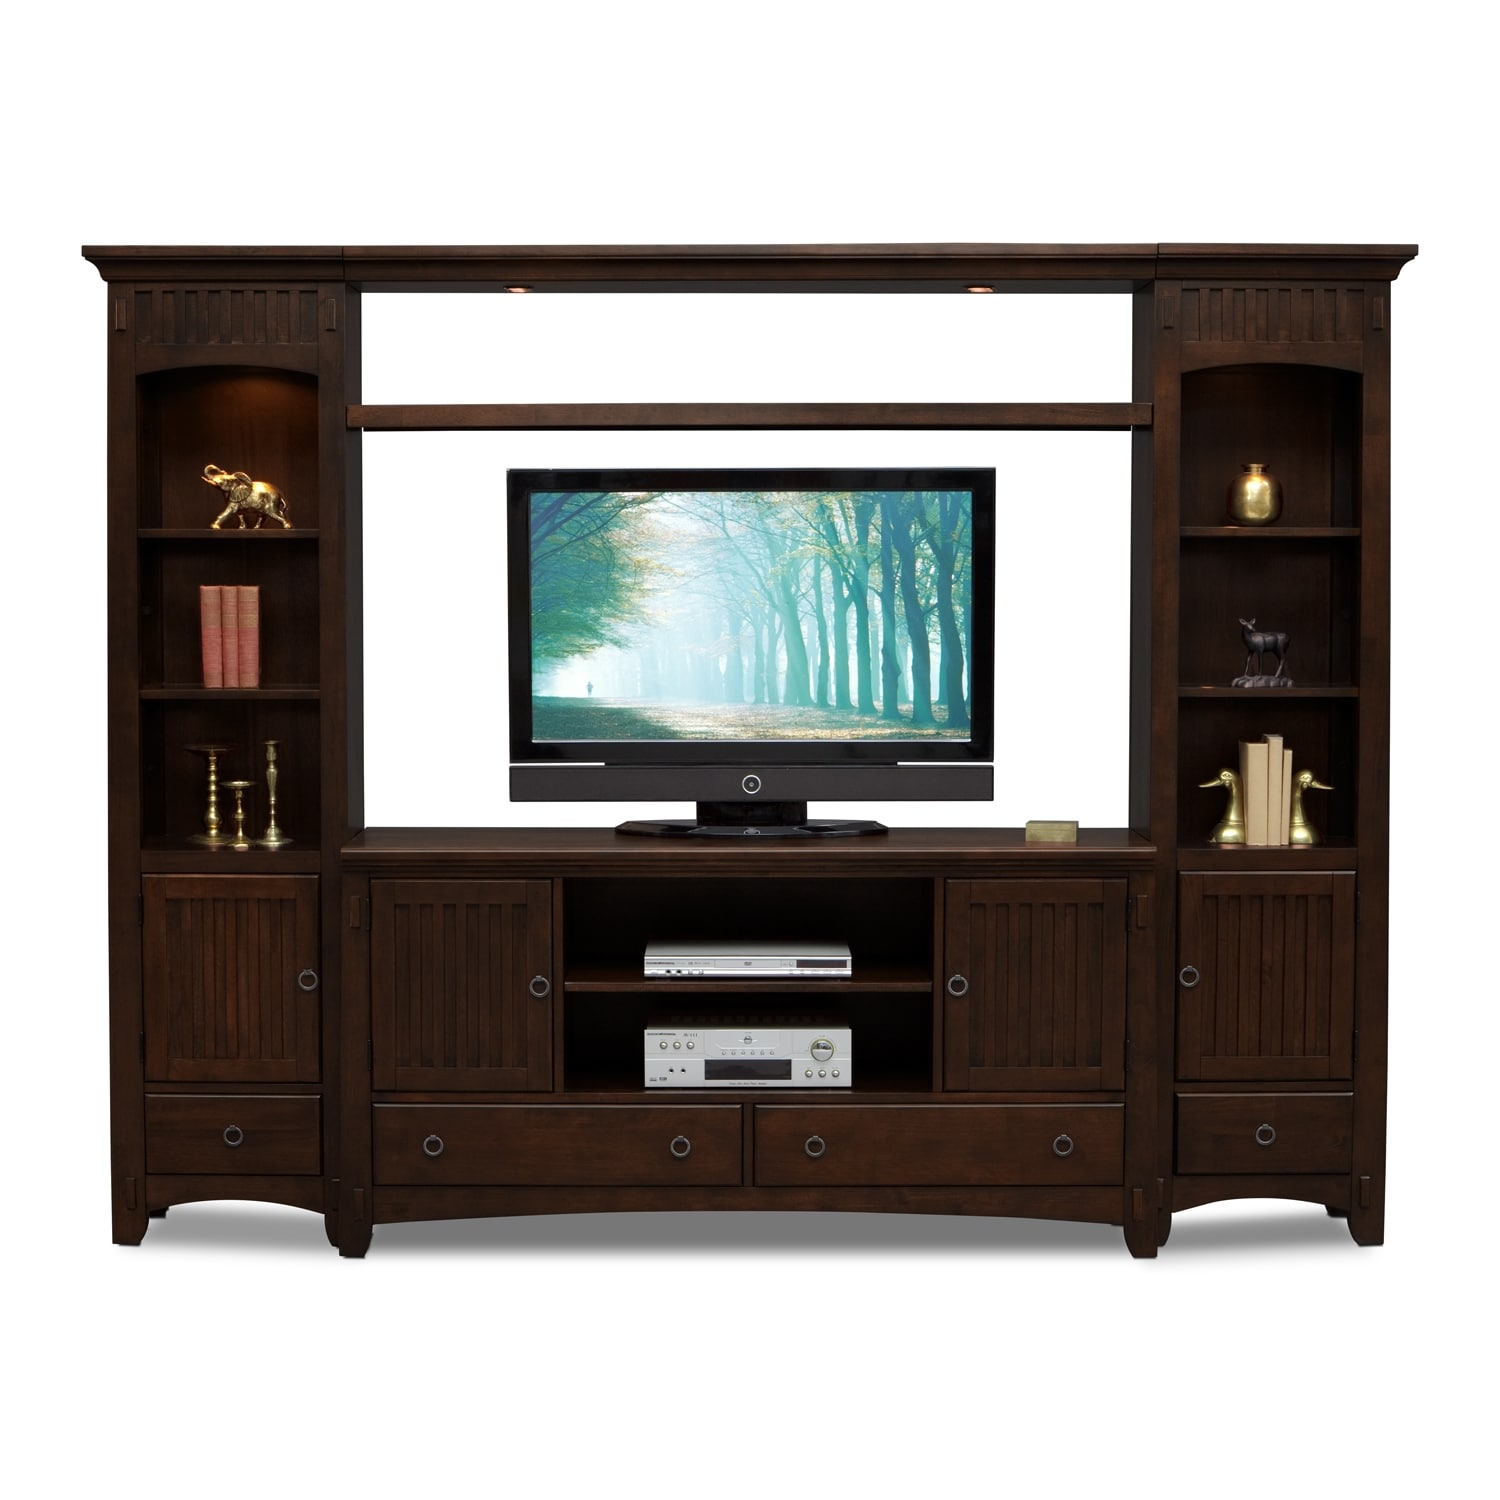 Entertainment Furniture - Arts & Crafts Dark II 4 Pc. Entertainment Wall Unit